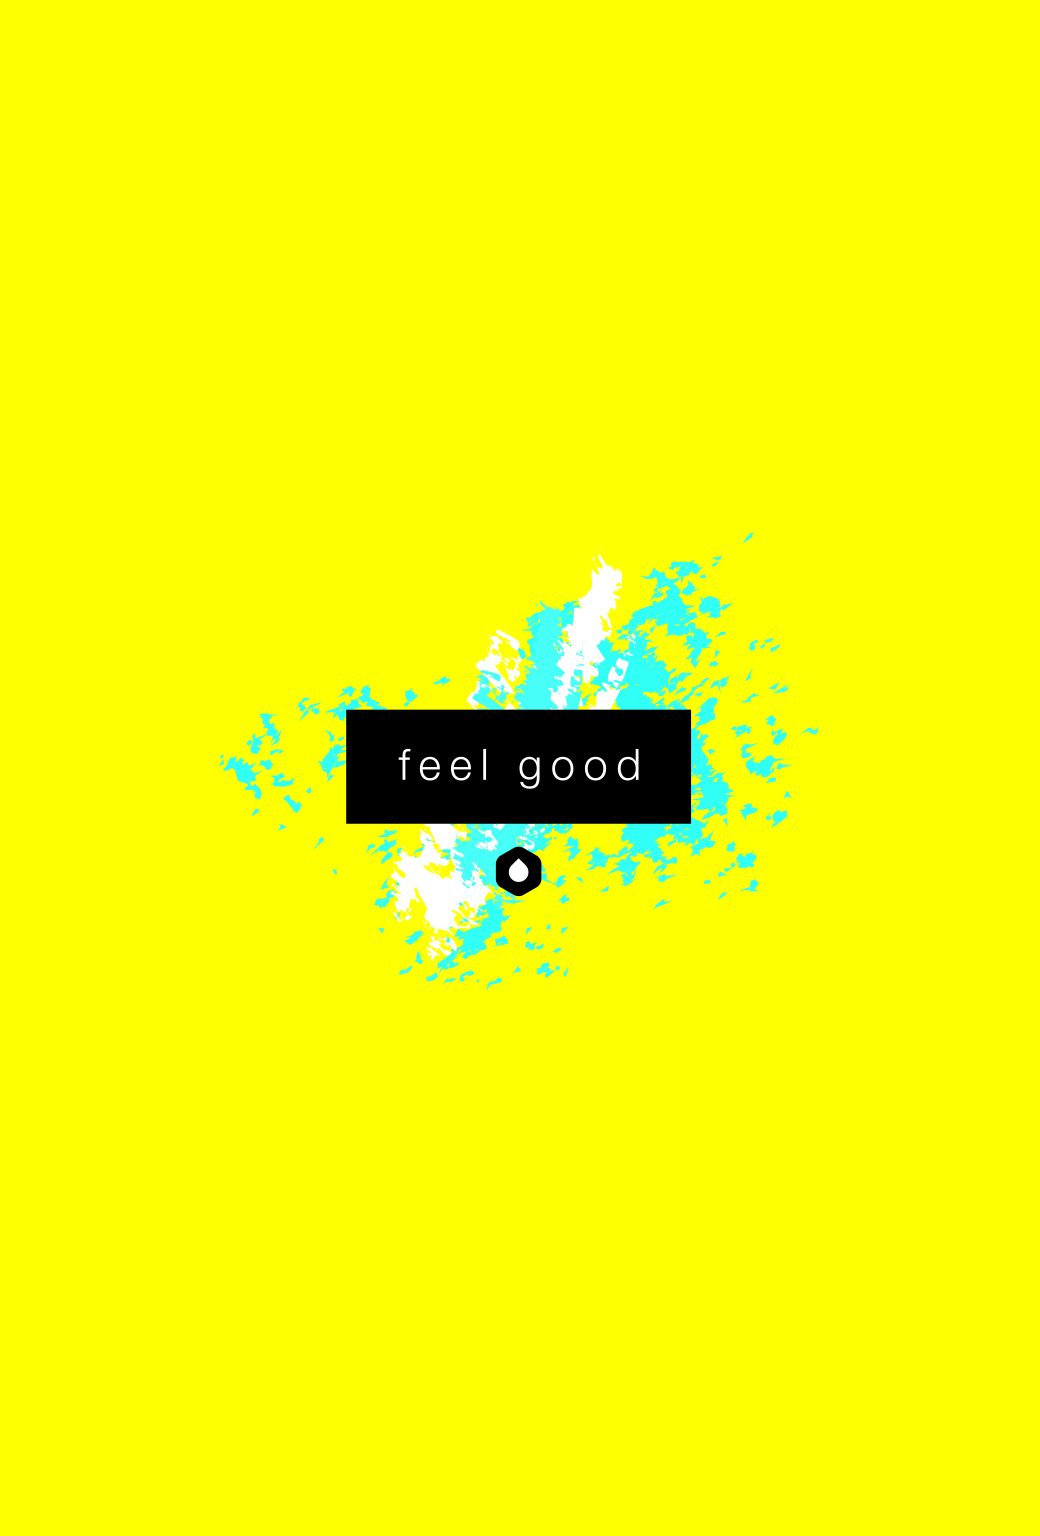 Wallpaper-FeelGood-iPhone5